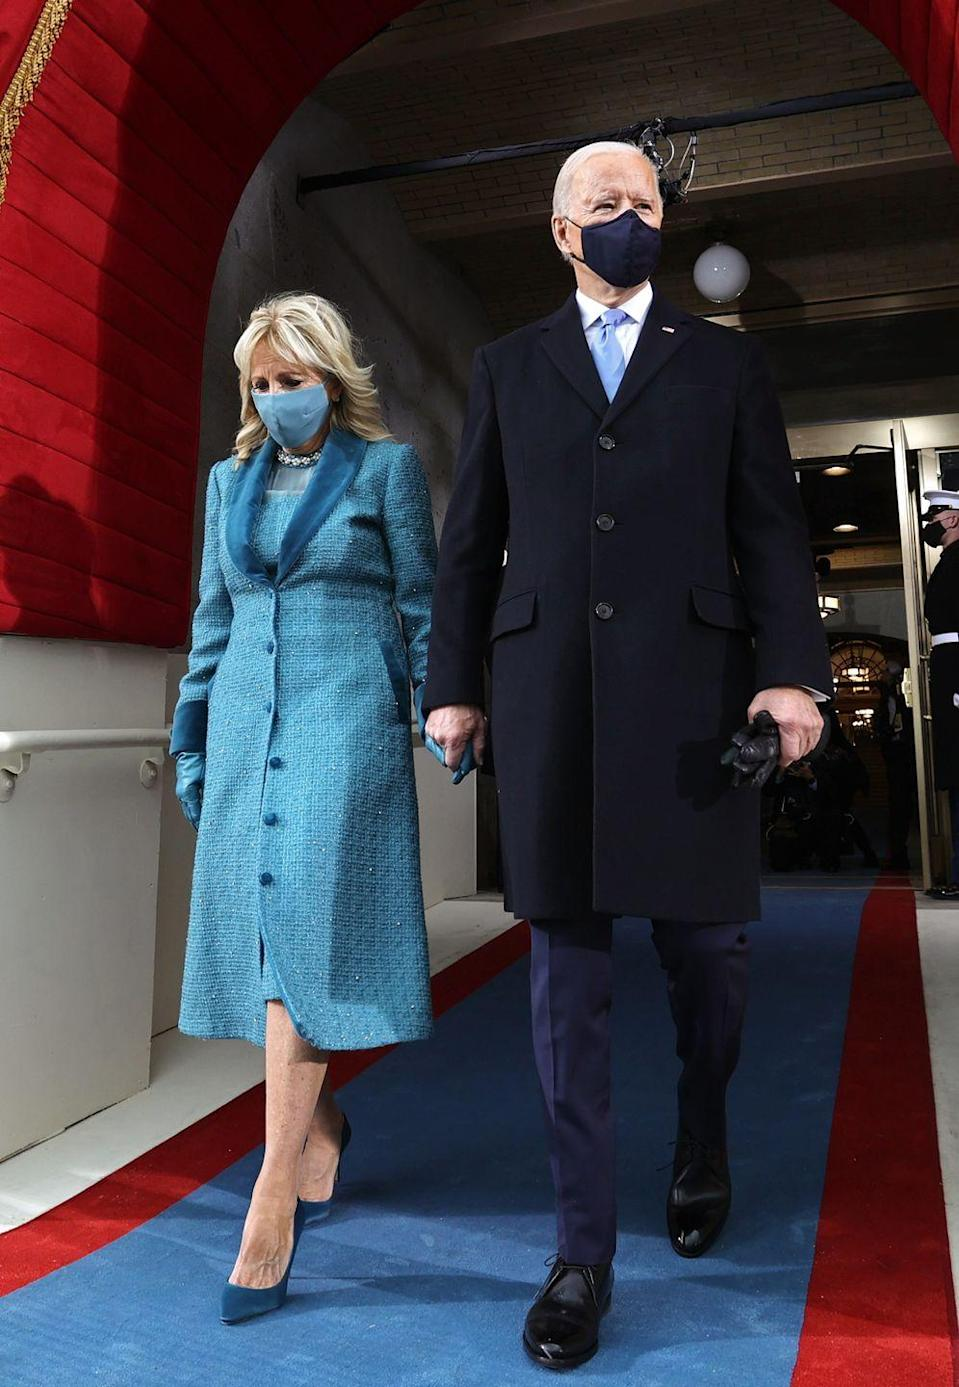 "<p>For the inauguration ceremony and the events that followed—including a visit to Arlington National Cemetery, a parade, and, finally, entering the White House for the first time as First Lady—<a href=""https://www.townandcountrymag.com/society/politics/a35269485/jill-biden-markarian-blue-dress-inauguration-meaning/"" rel=""nofollow noopener"" target=""_blank"" data-ylk=""slk:Dr. Jill Biden wore a custom dress and overcoat by Markarian"" class=""link rapid-noclick-resp"">Dr. Jill Biden wore a custom dress and overcoat by Markarian</a>. The New York-based label from designer Alexandra O'Neill operates with a waste-reducing made-to-order model, and proudly manufactures its wares in the city's Garment District. In a press release, the brand revealed that the color blue was chosen to ""signify trust, confidence, and stability.""</p>"